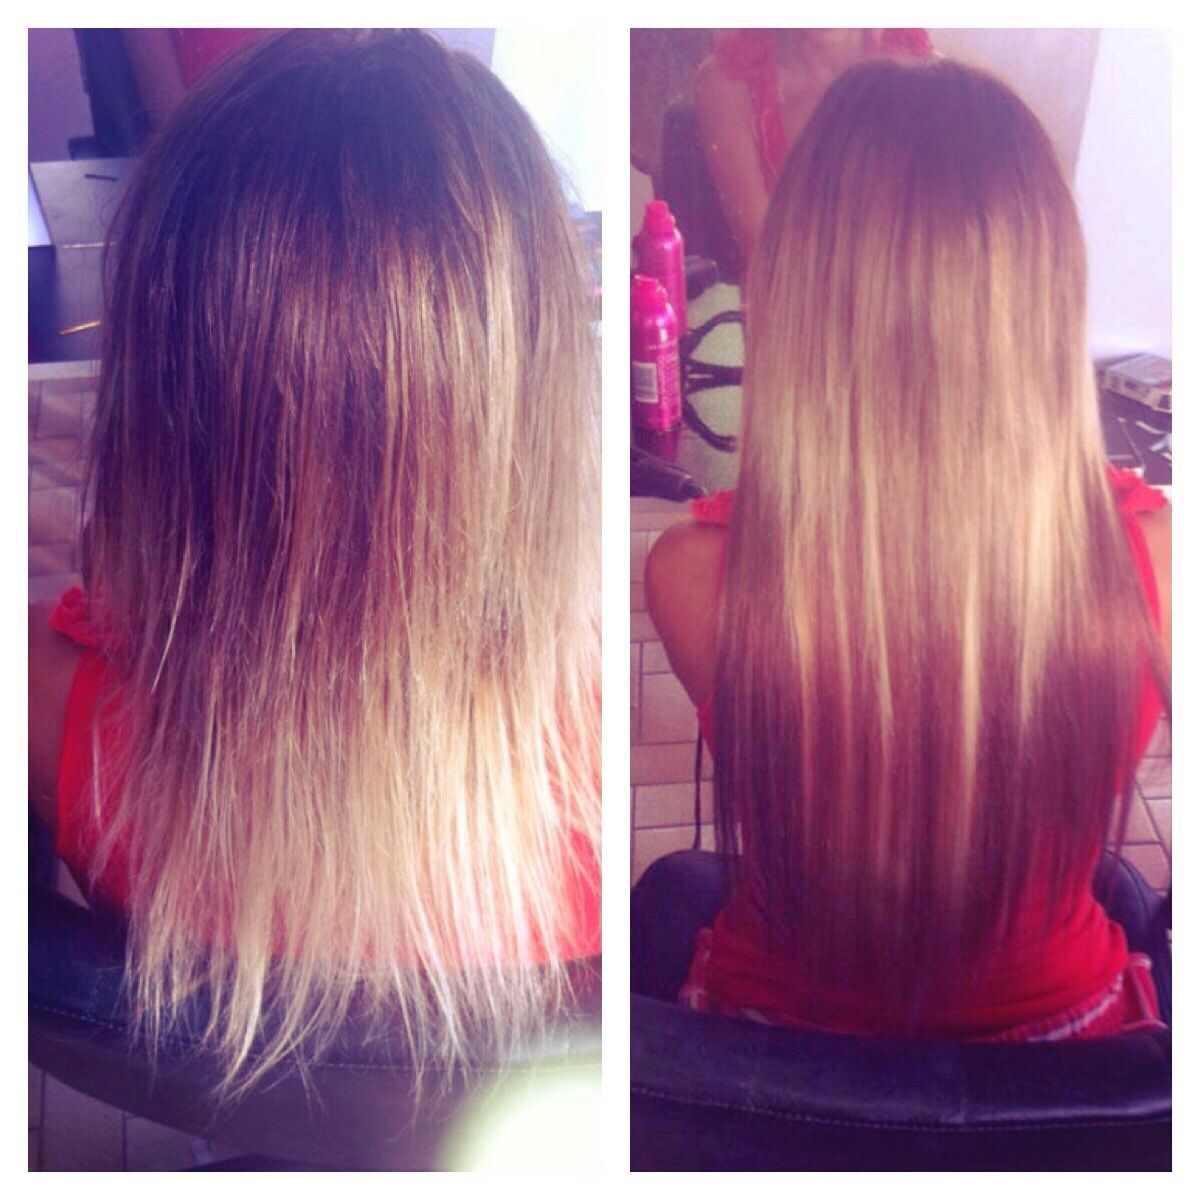 Perth Tape Hair Extension Is The Biggest Clip In Hair Extensions